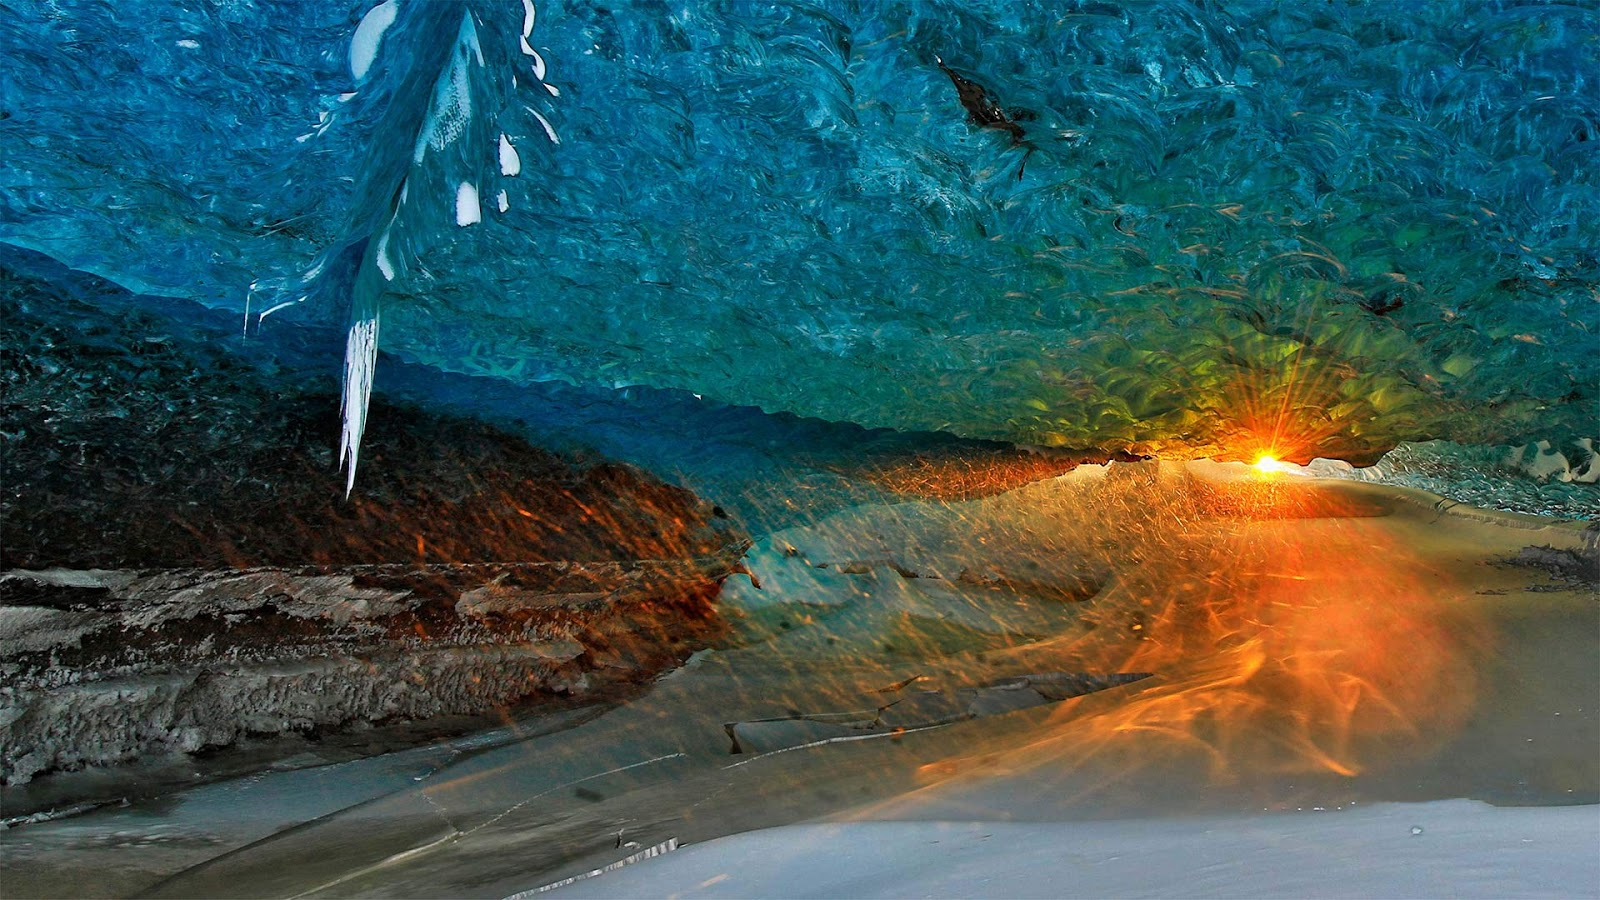 Ice cave at sunset in Vatnajökull National Park, Iceland © Johnathan Ampersand Esper/Aurora Photos